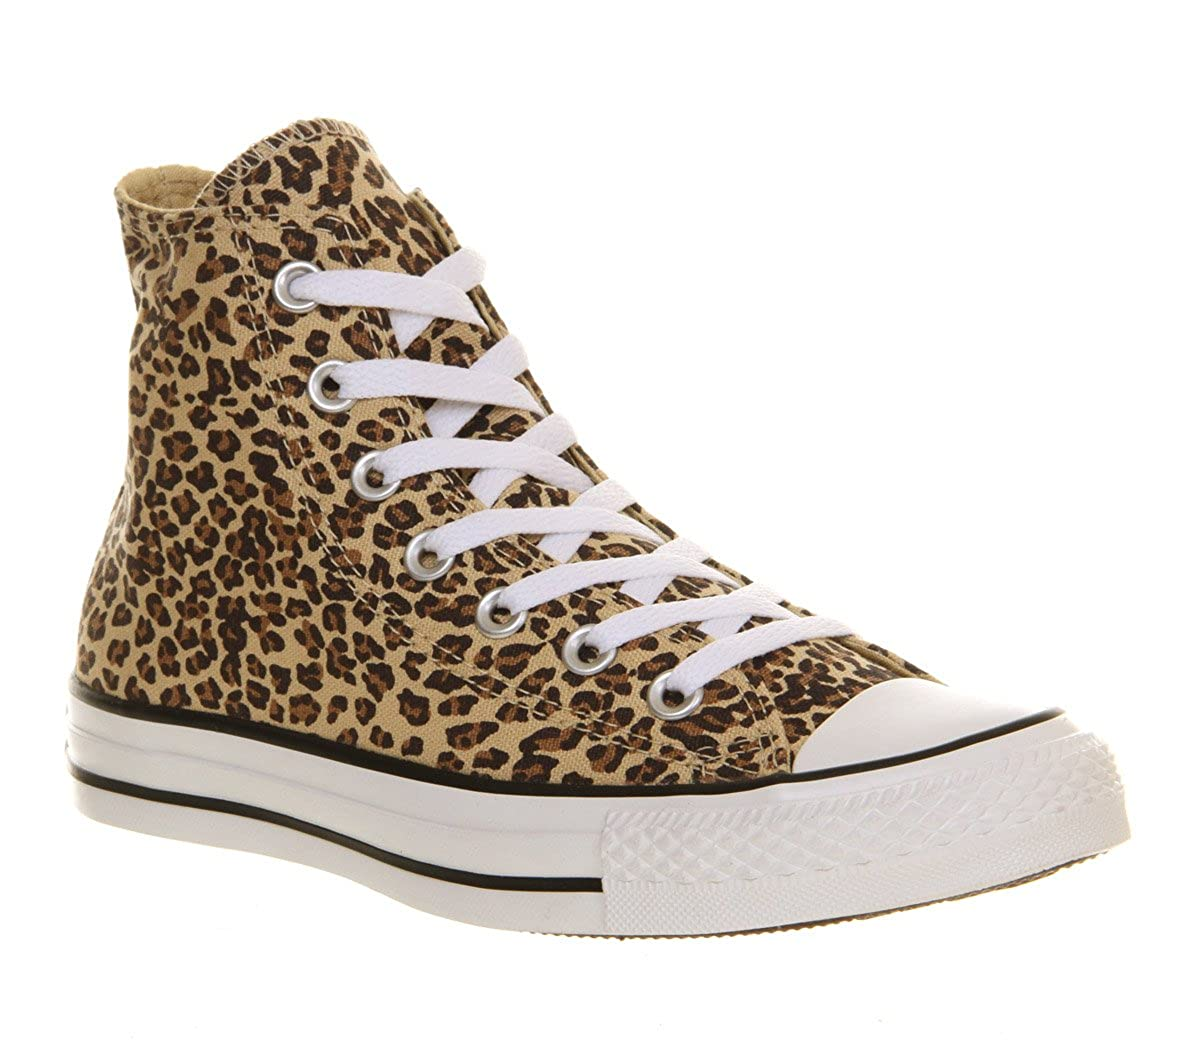 5c56006439dae Converse Unisex-Adult Chuck Taylor All Star Core Hi Trainers Leopard ...